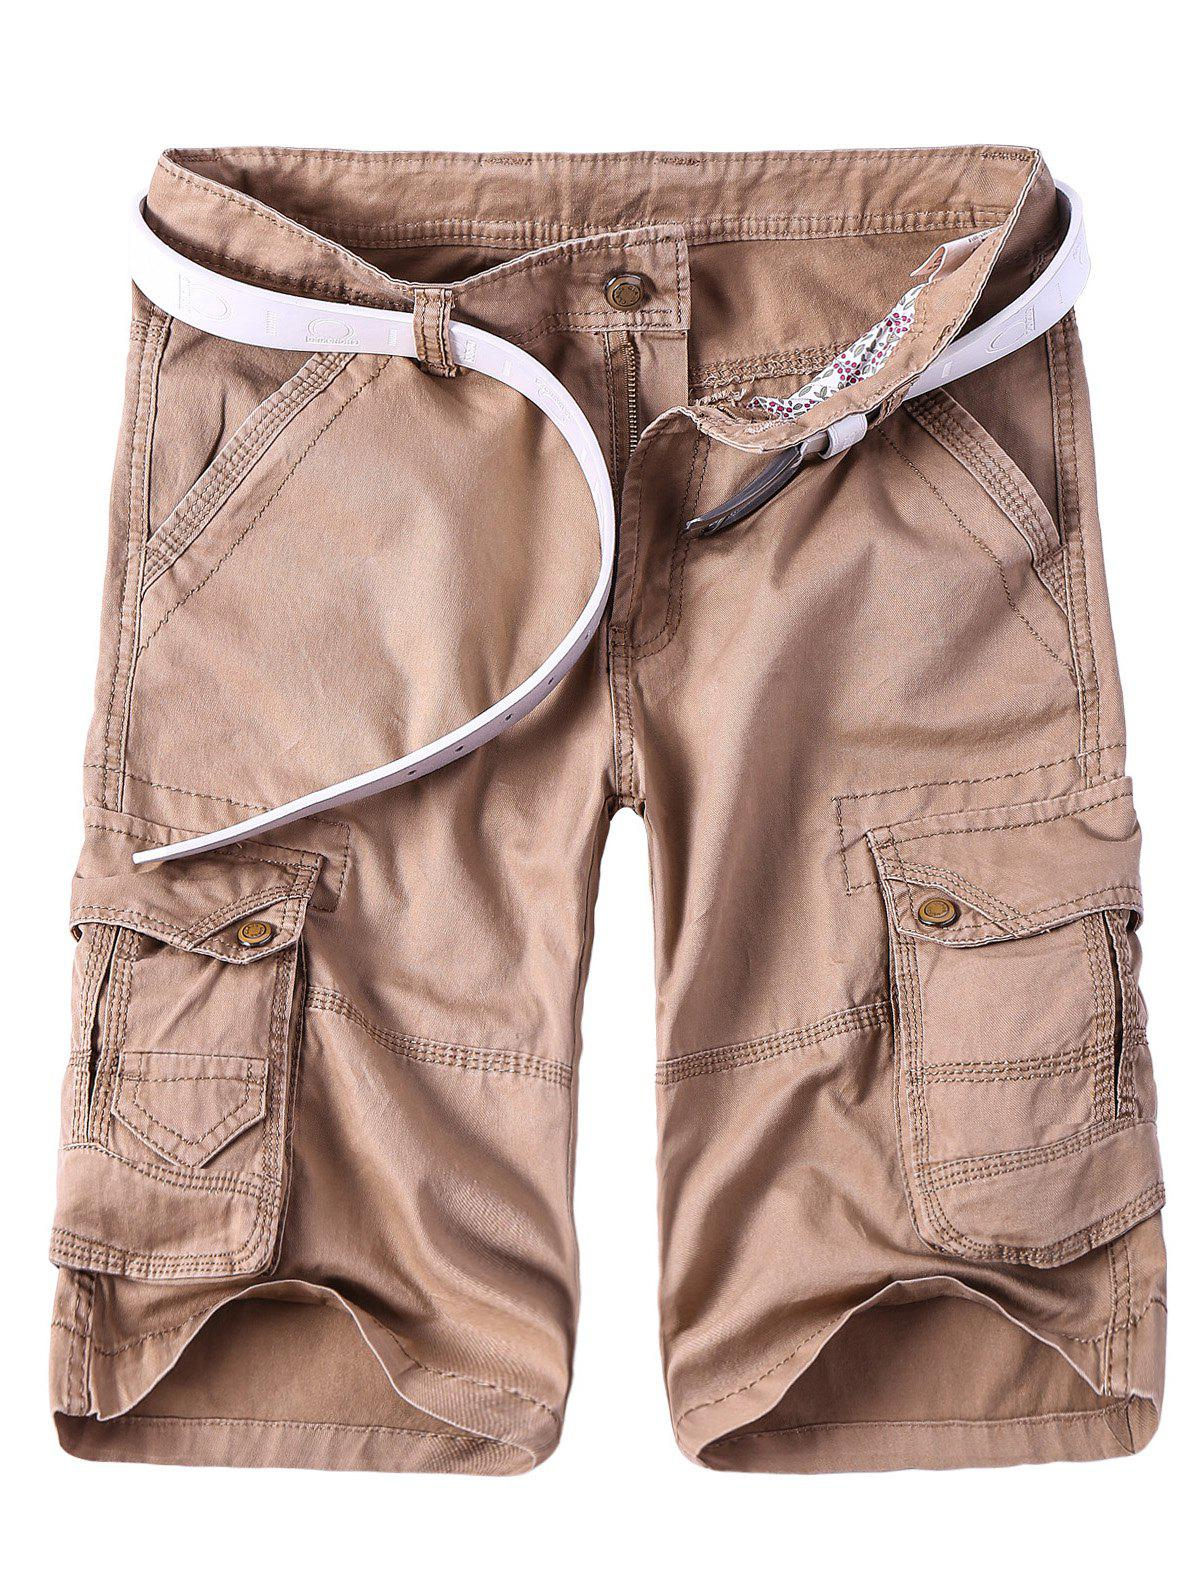 Solid Color Multi-Pocket Straight Leg Zipper Fly Men's Cargo Shorts